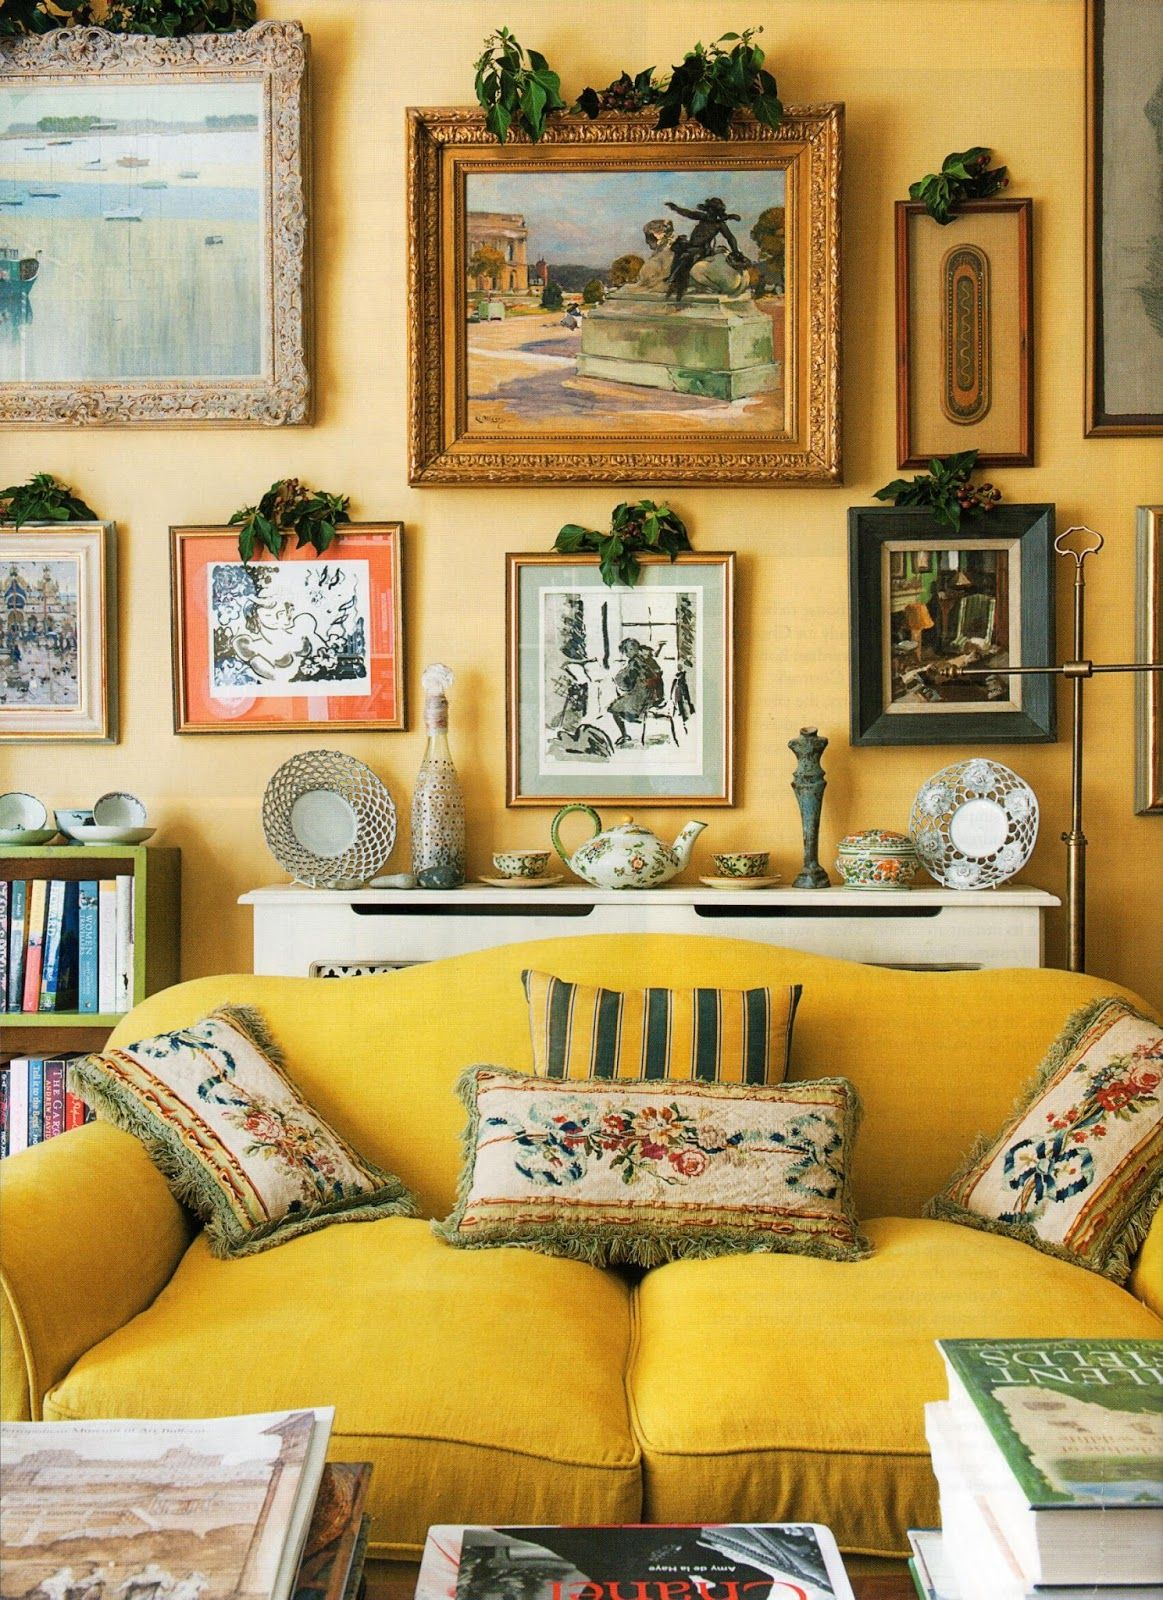 House Beautiful: Accent Yellow | ZsaZsa Bellagio - Like No Other ...